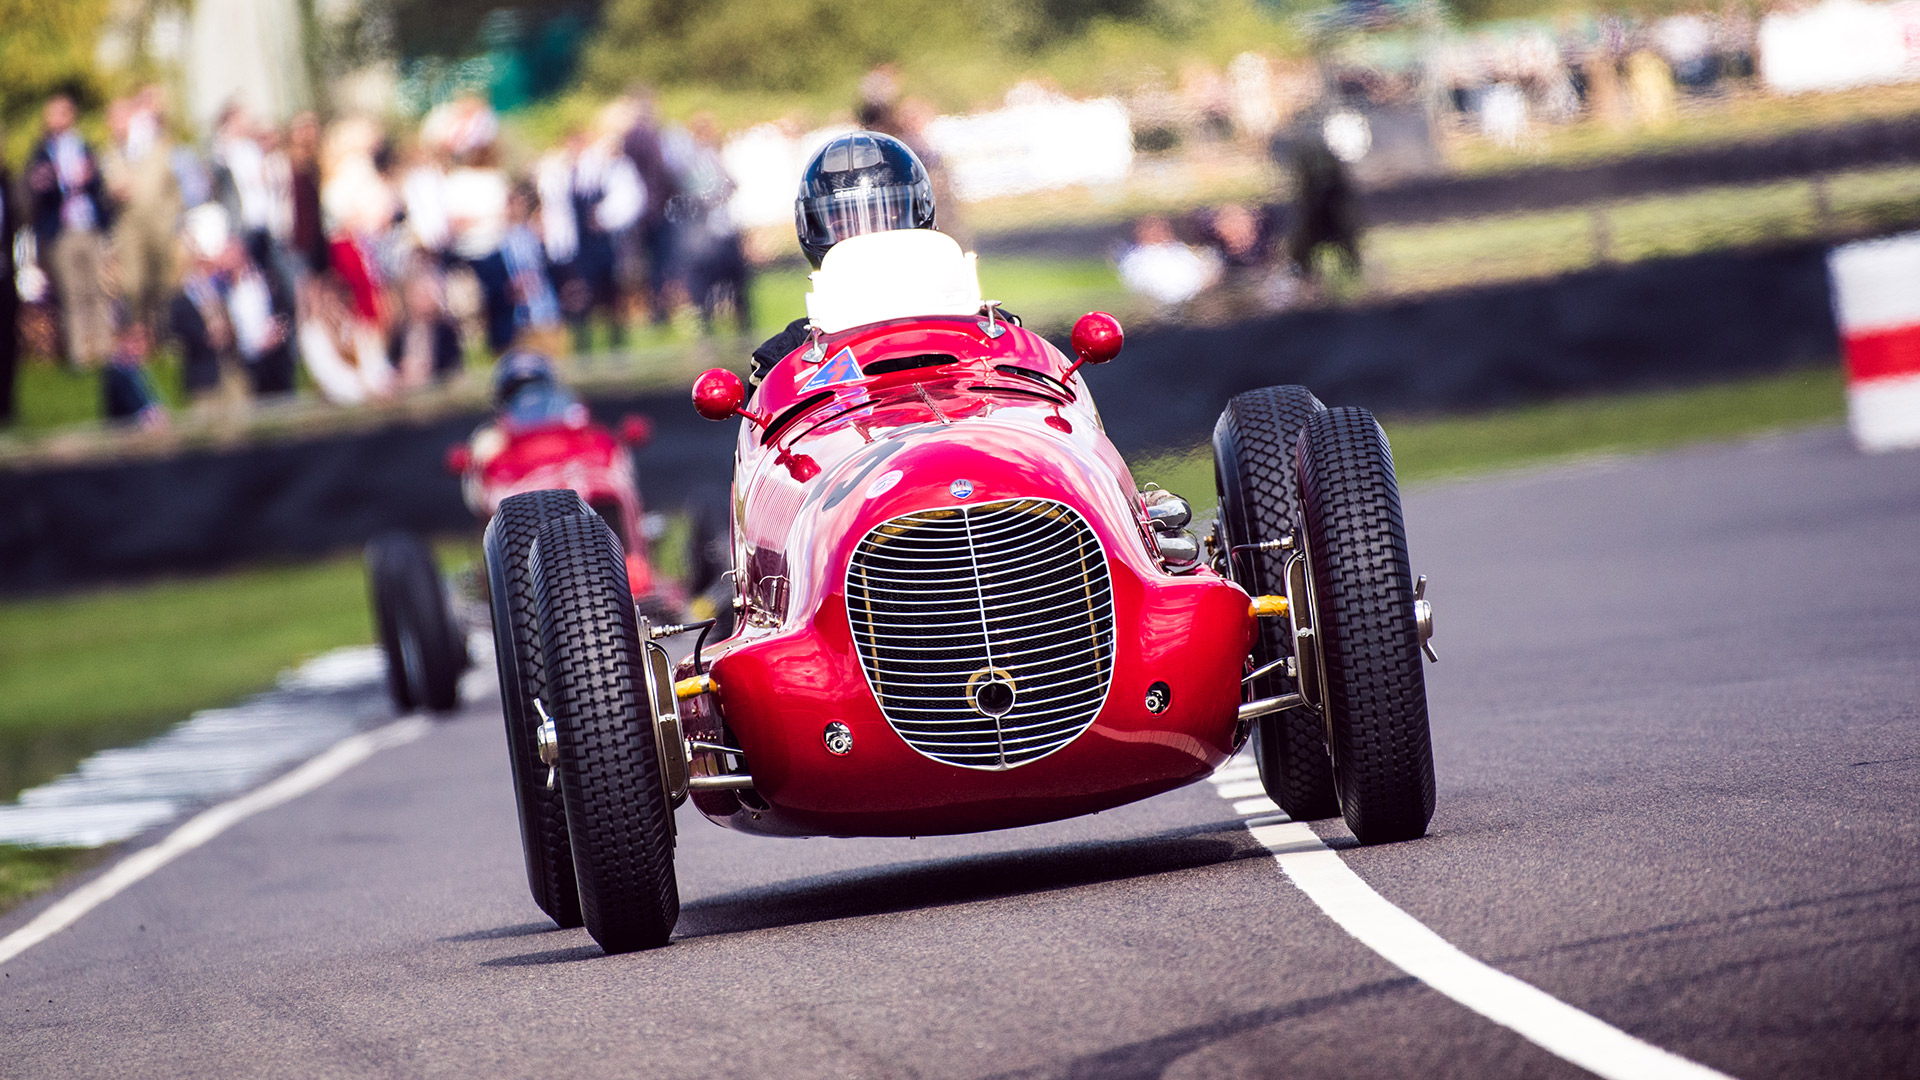 The 1936 Maserati 6CM single-seater racing car competing on the Goodwood circuit